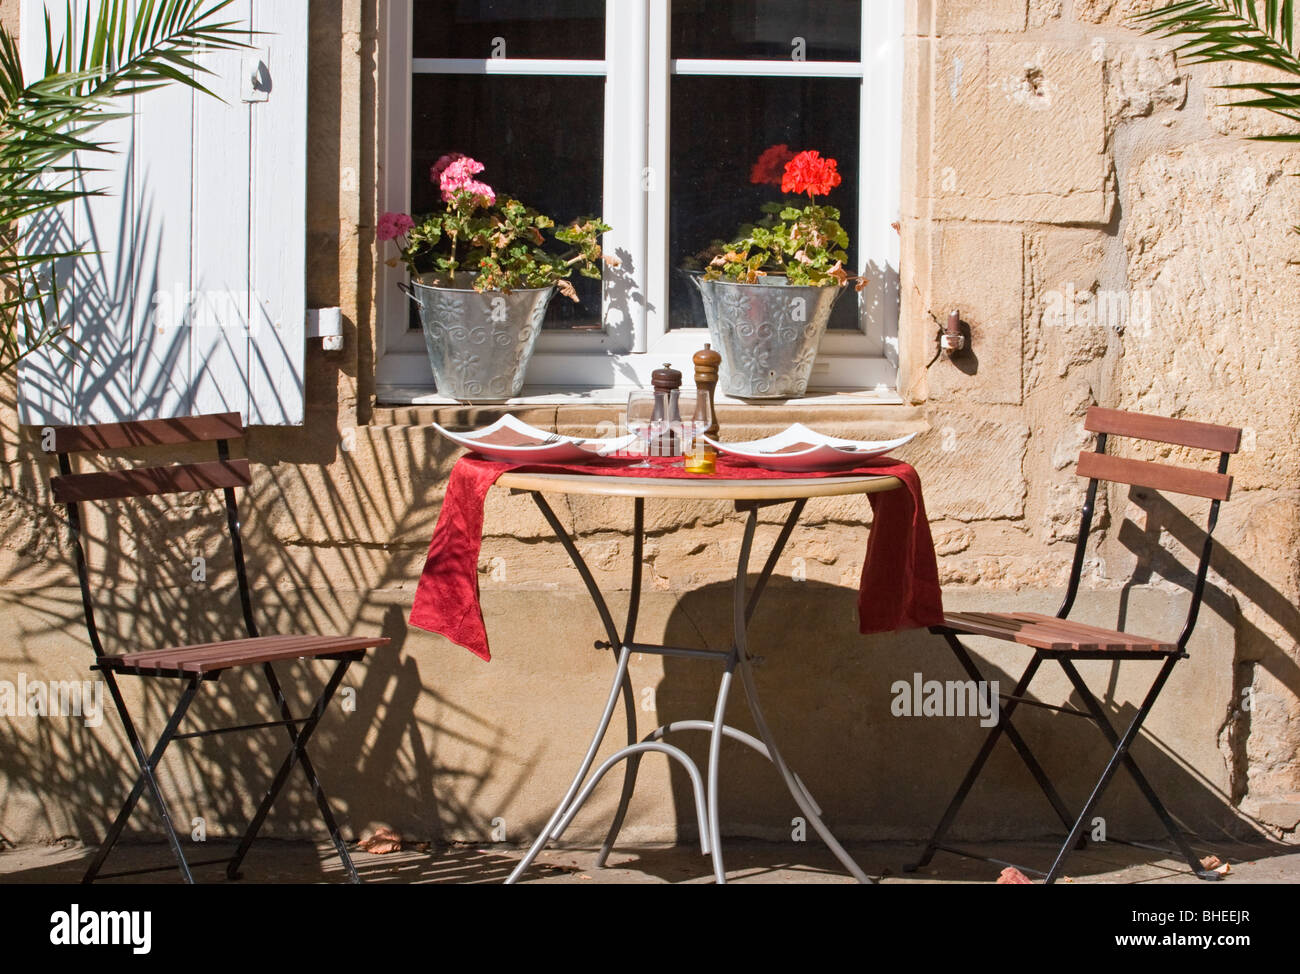 A Charming Cafe Table For Two Outside The Restaurant La Flambee In Picturesque Medieval Village Of Domme Dordogne France